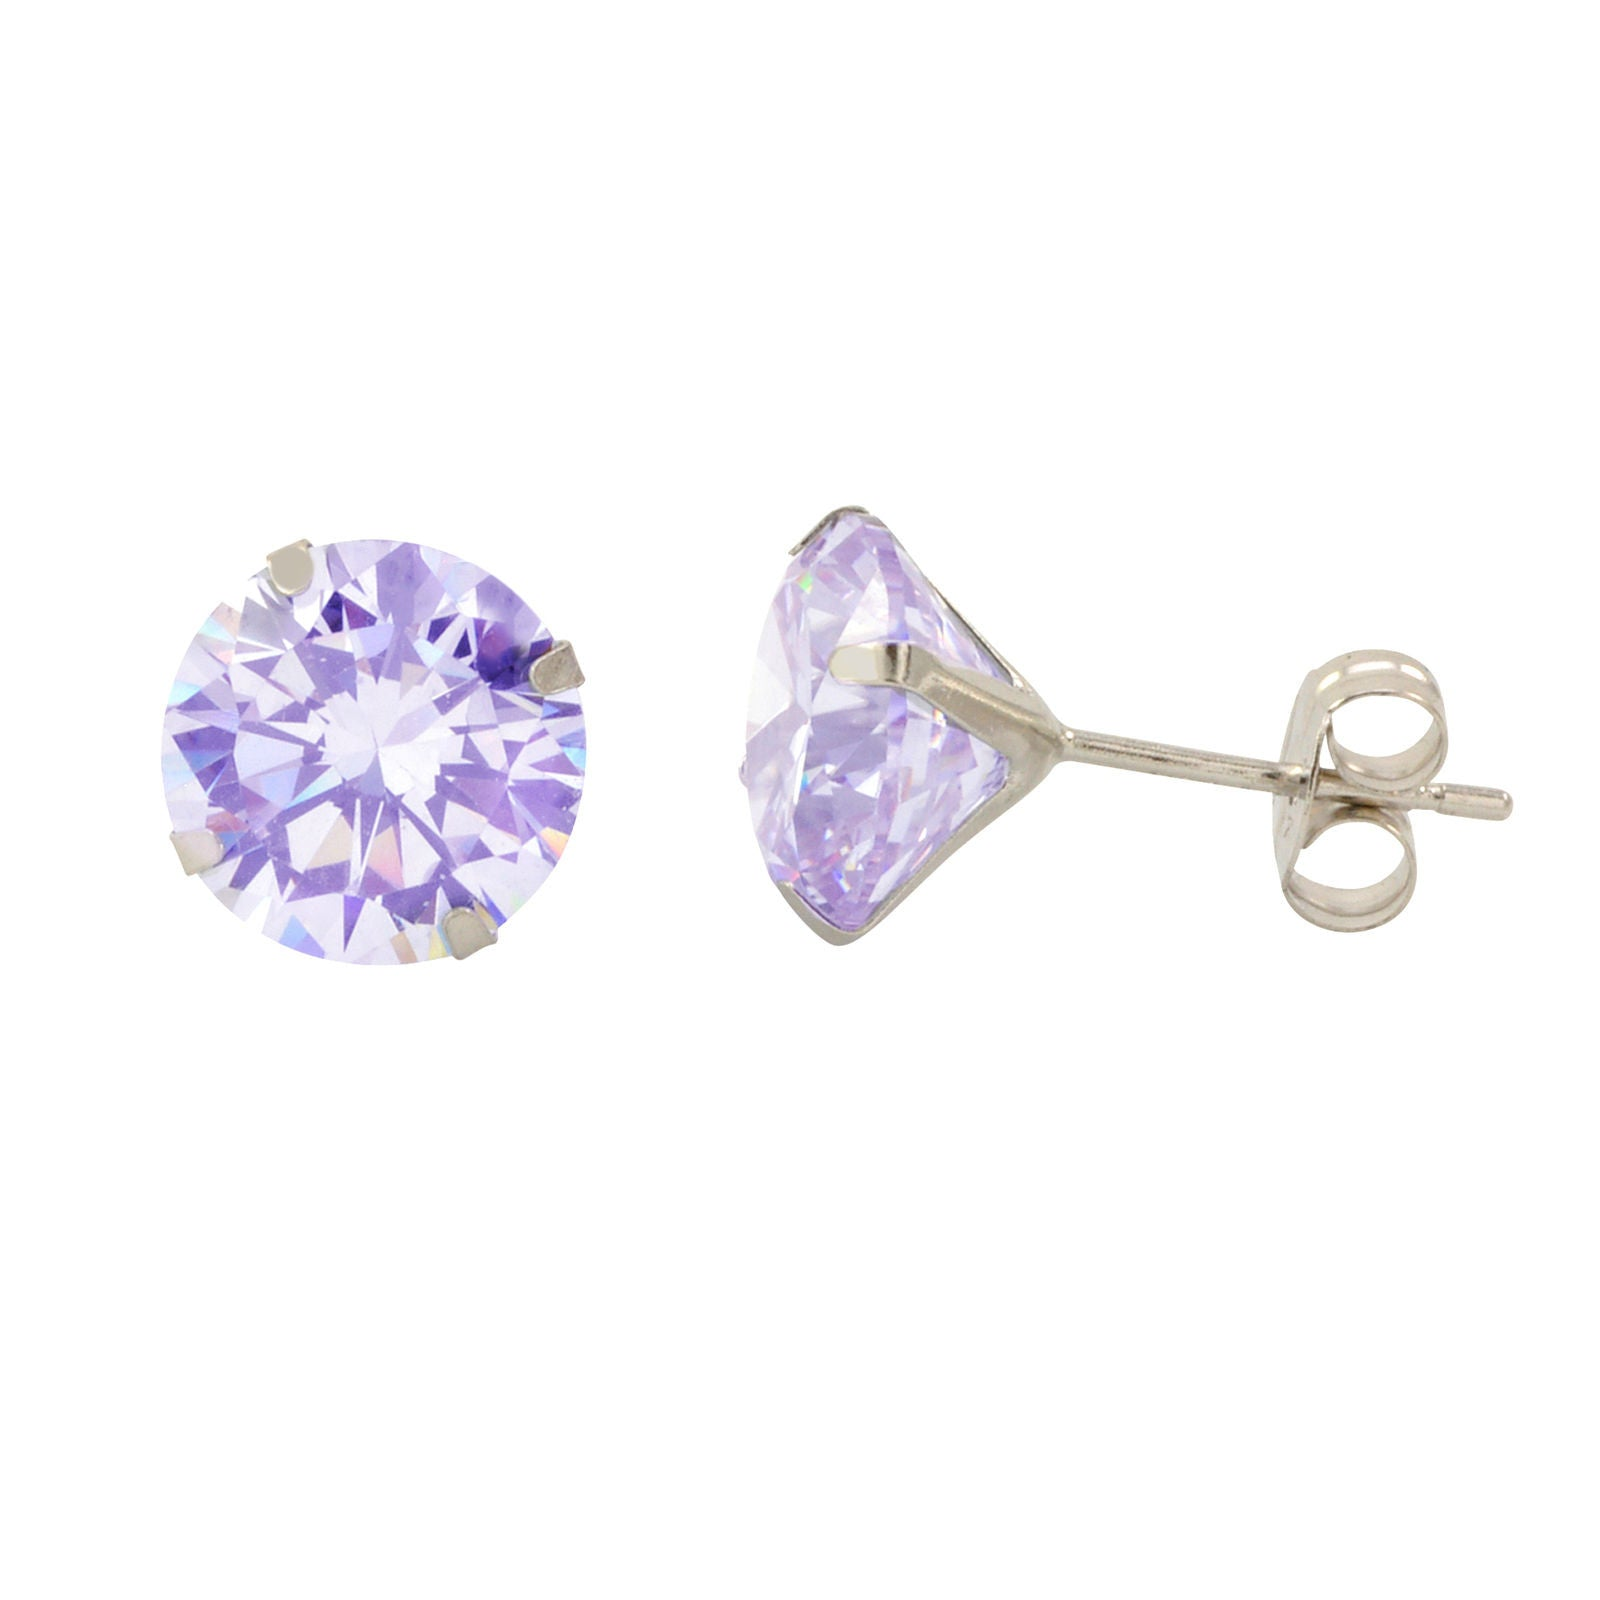 silver cubic icing us sterling zirconia earrings stud pack